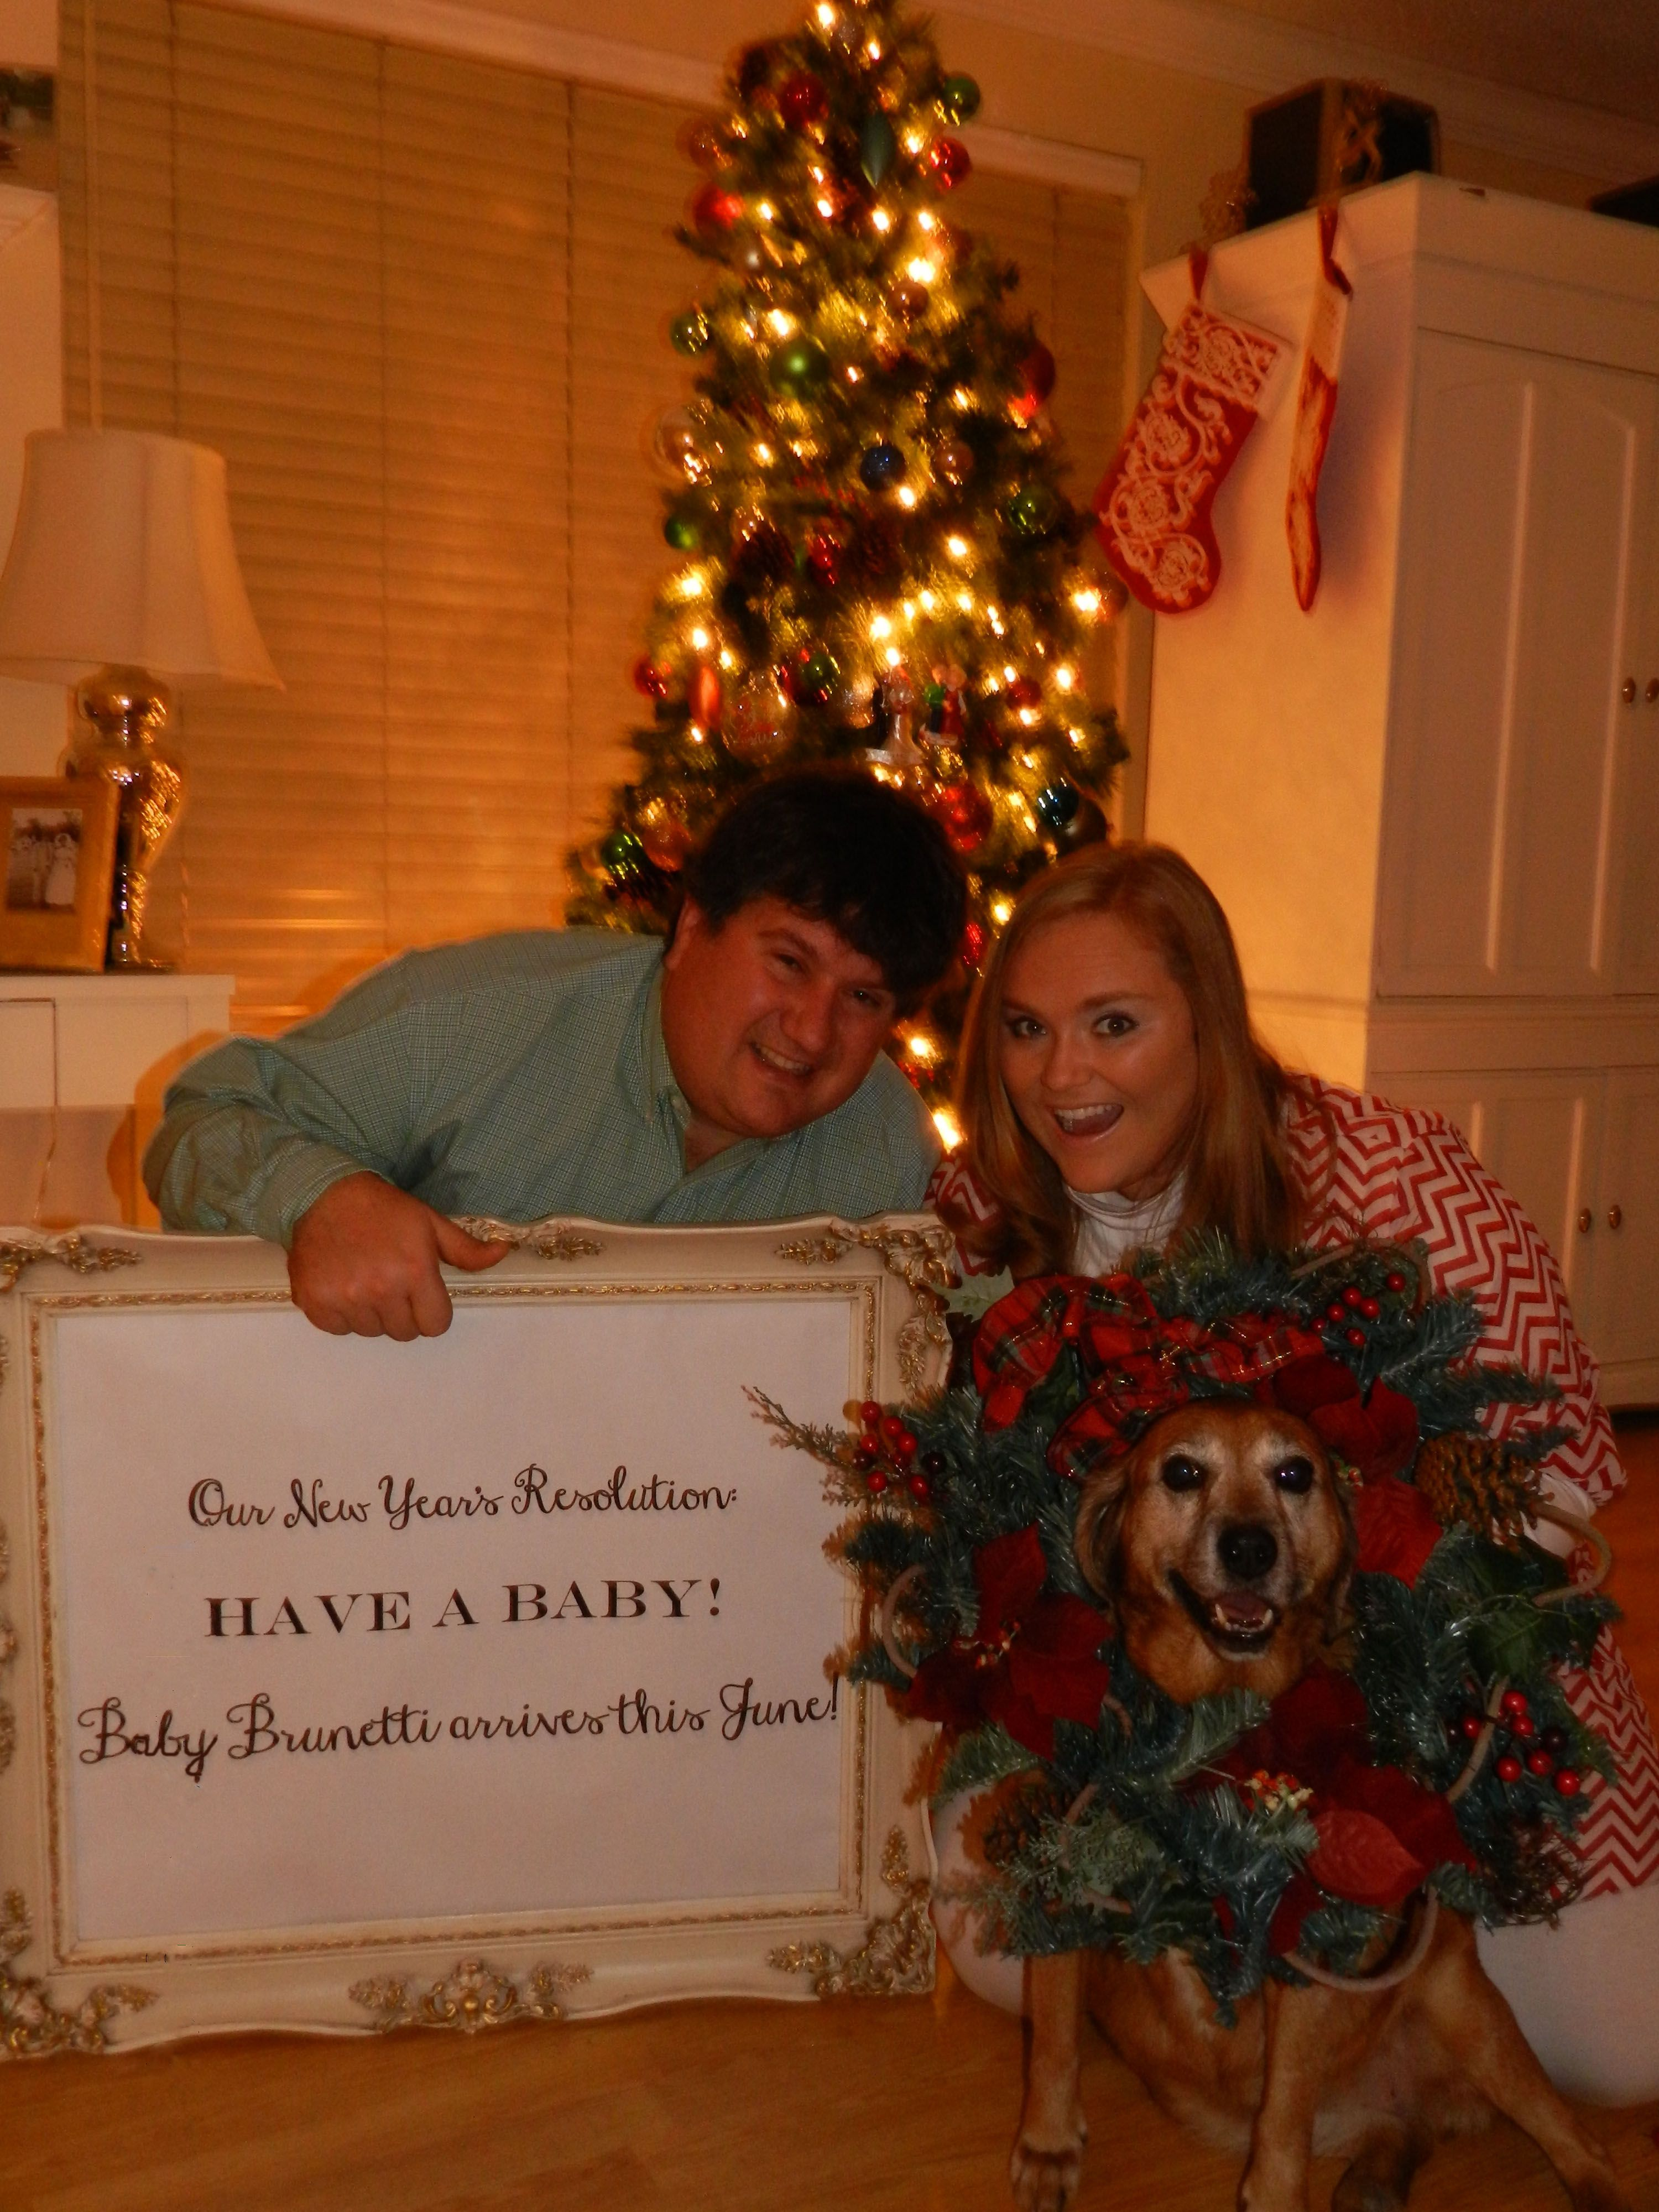 Our Christmas/New Years pregnancy announcement The sign